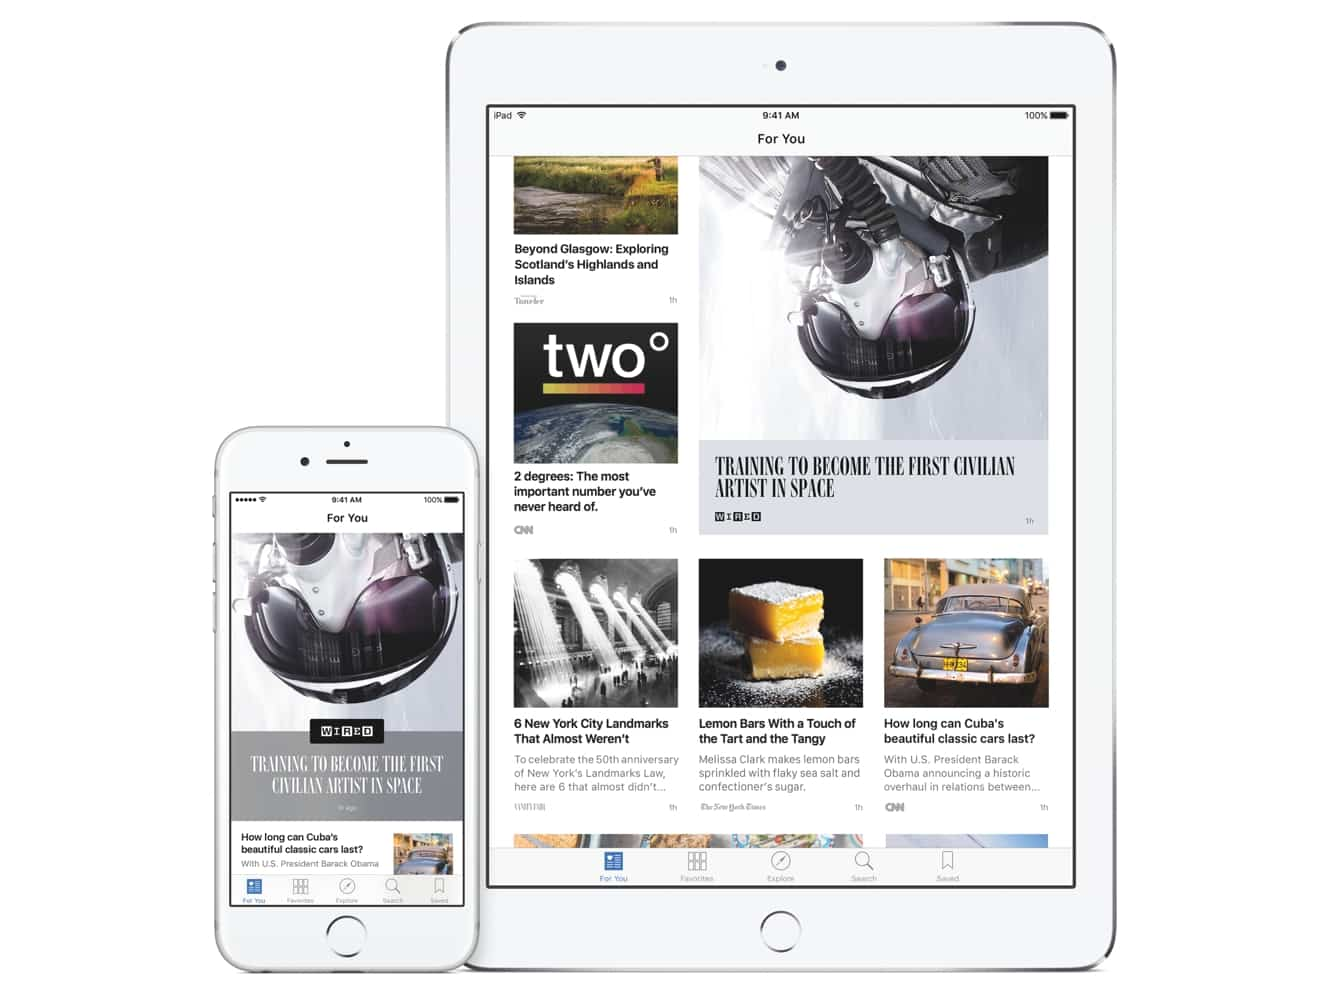 Report: Apple to offer subscription content via News app